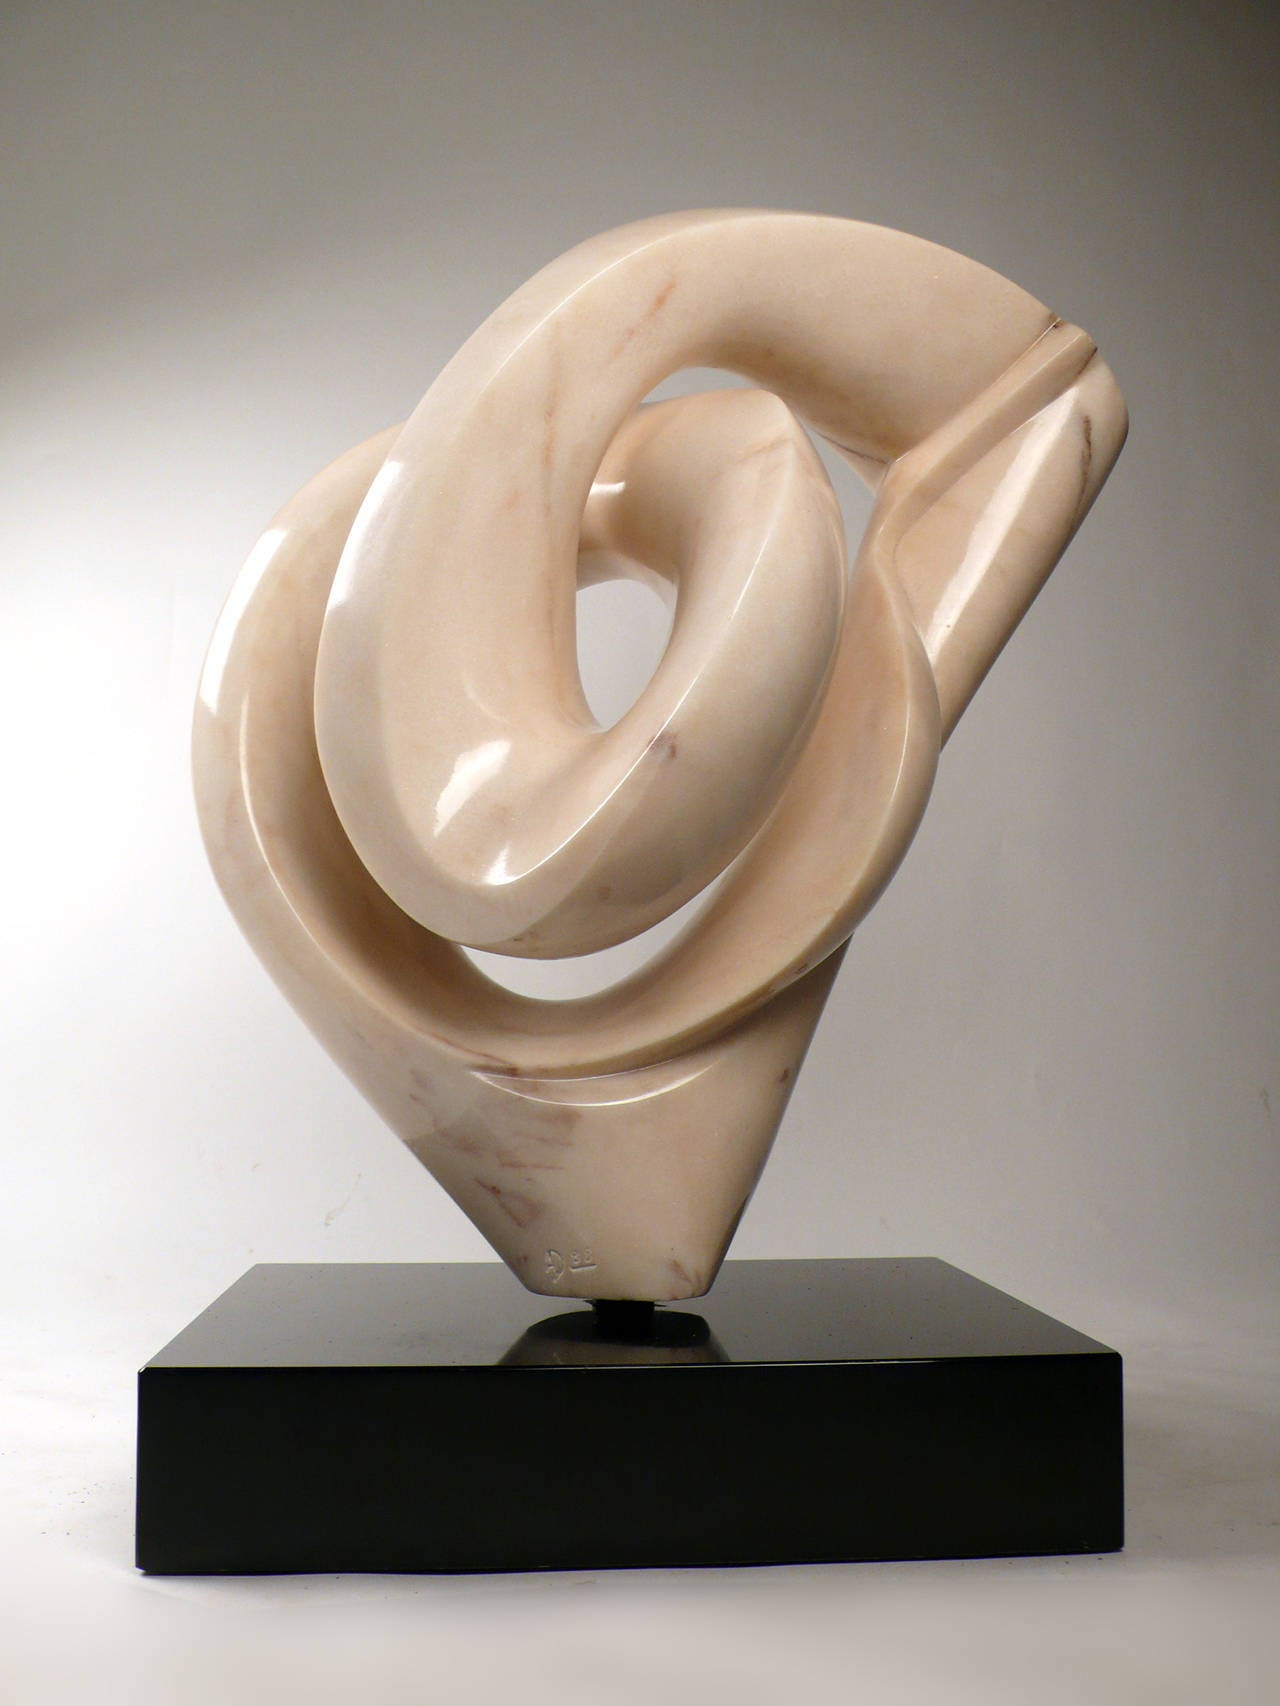 Solid 'Aurora marble' abstract direct carved sculpture from the estate of a private collector in the Florida Keys.  This sensual form is attached to a solid black marble base with brass fittings. The entire form can be rotated 360 degrees. The